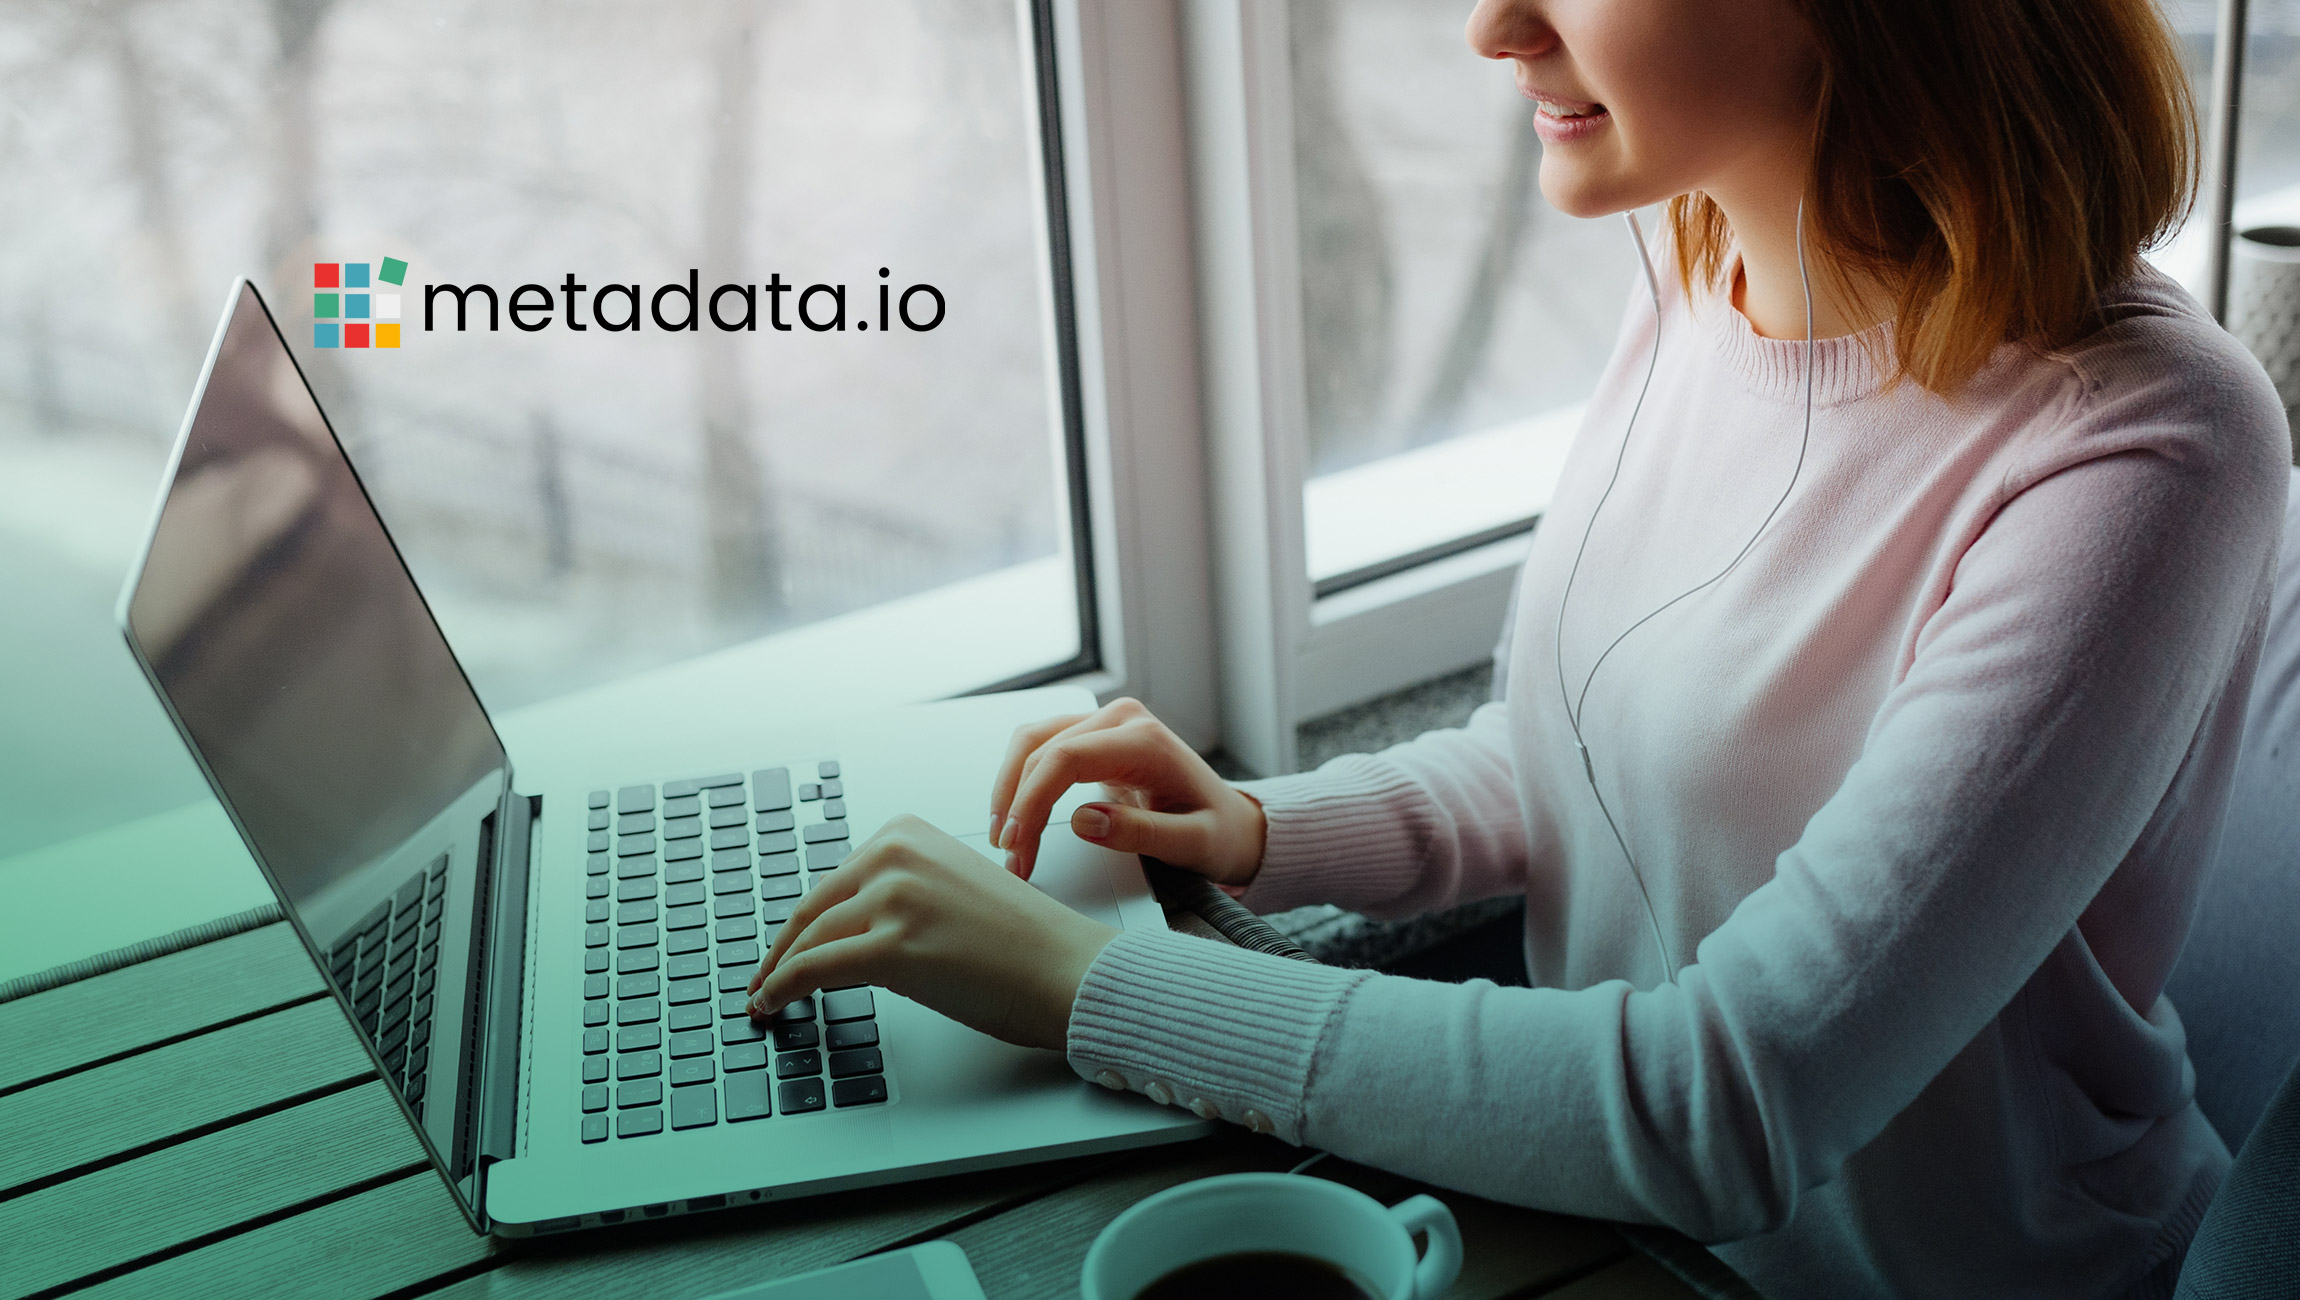 Metadata.io Named Leader in G2 Account-Based Advertising Software for Summer 2020 Report